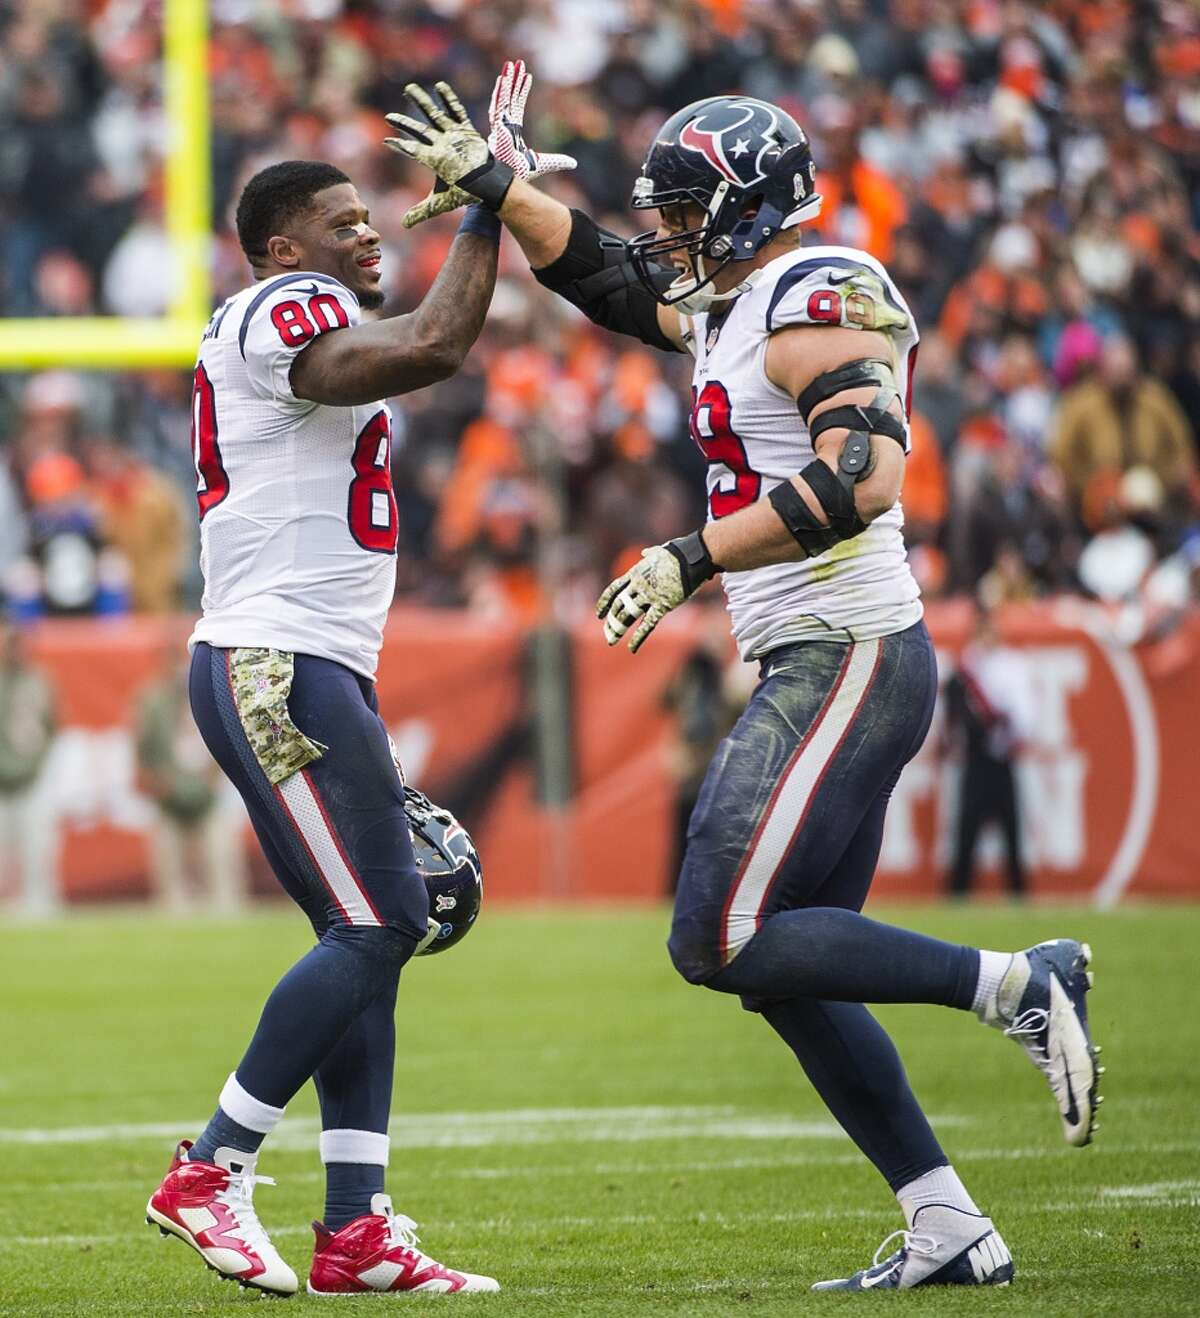 Houston Texans defensive end J.J. Watt (99) gets a hand from wide receiver Andre Johnson (80) after scoring on a touchdown pass during the first quarter of NFL football game against the Cleveland Browns at FirstEnergy Stadium on Sunday, Nov. 16, 2014, in Cleveland. ( Smiley N. Pool / Houston Chronicle )